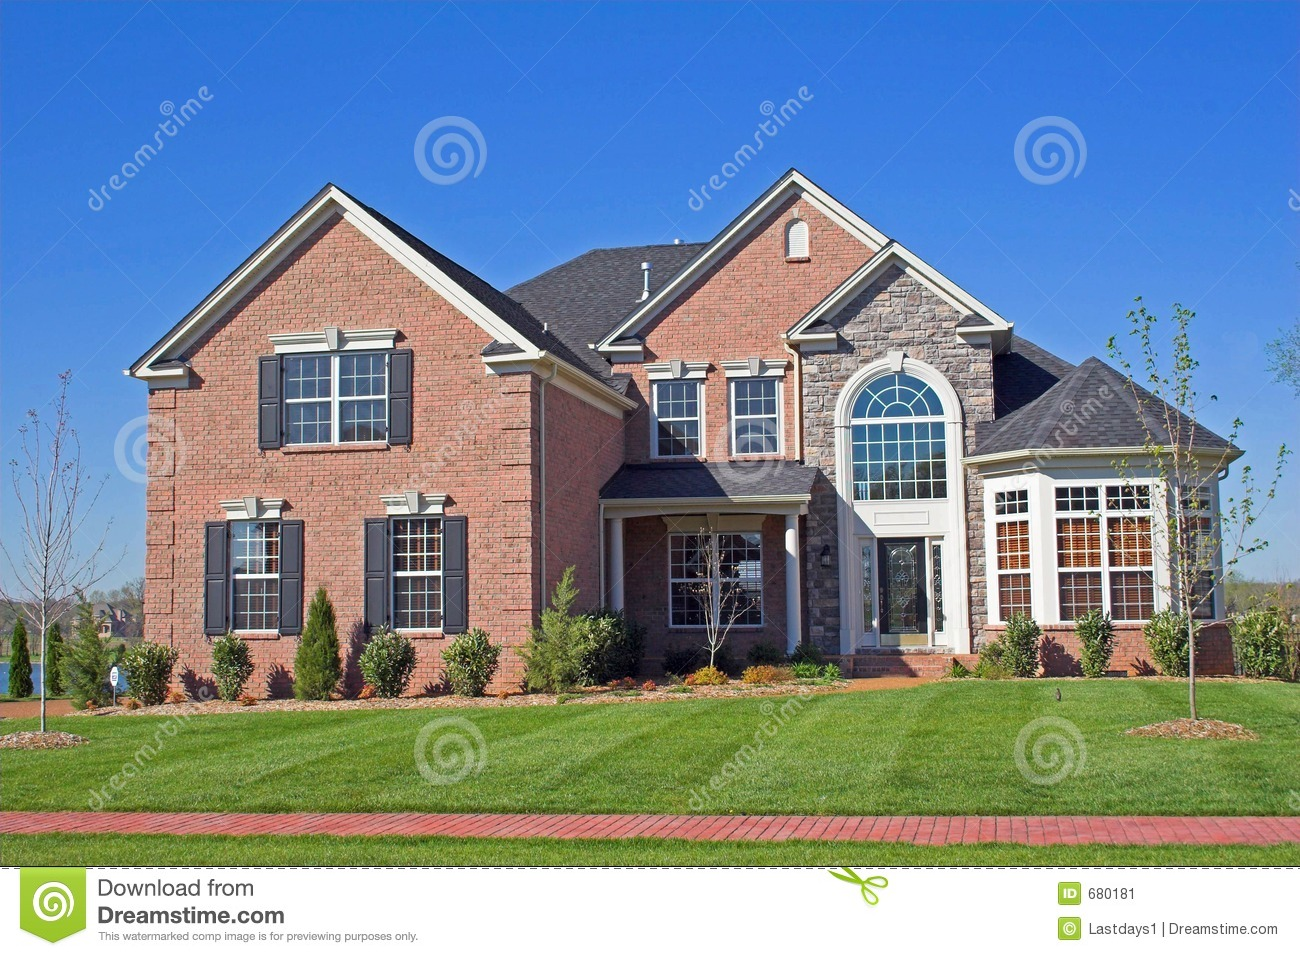 Beautiful homes series 1d stock image image 680181 for Beautiful home photos